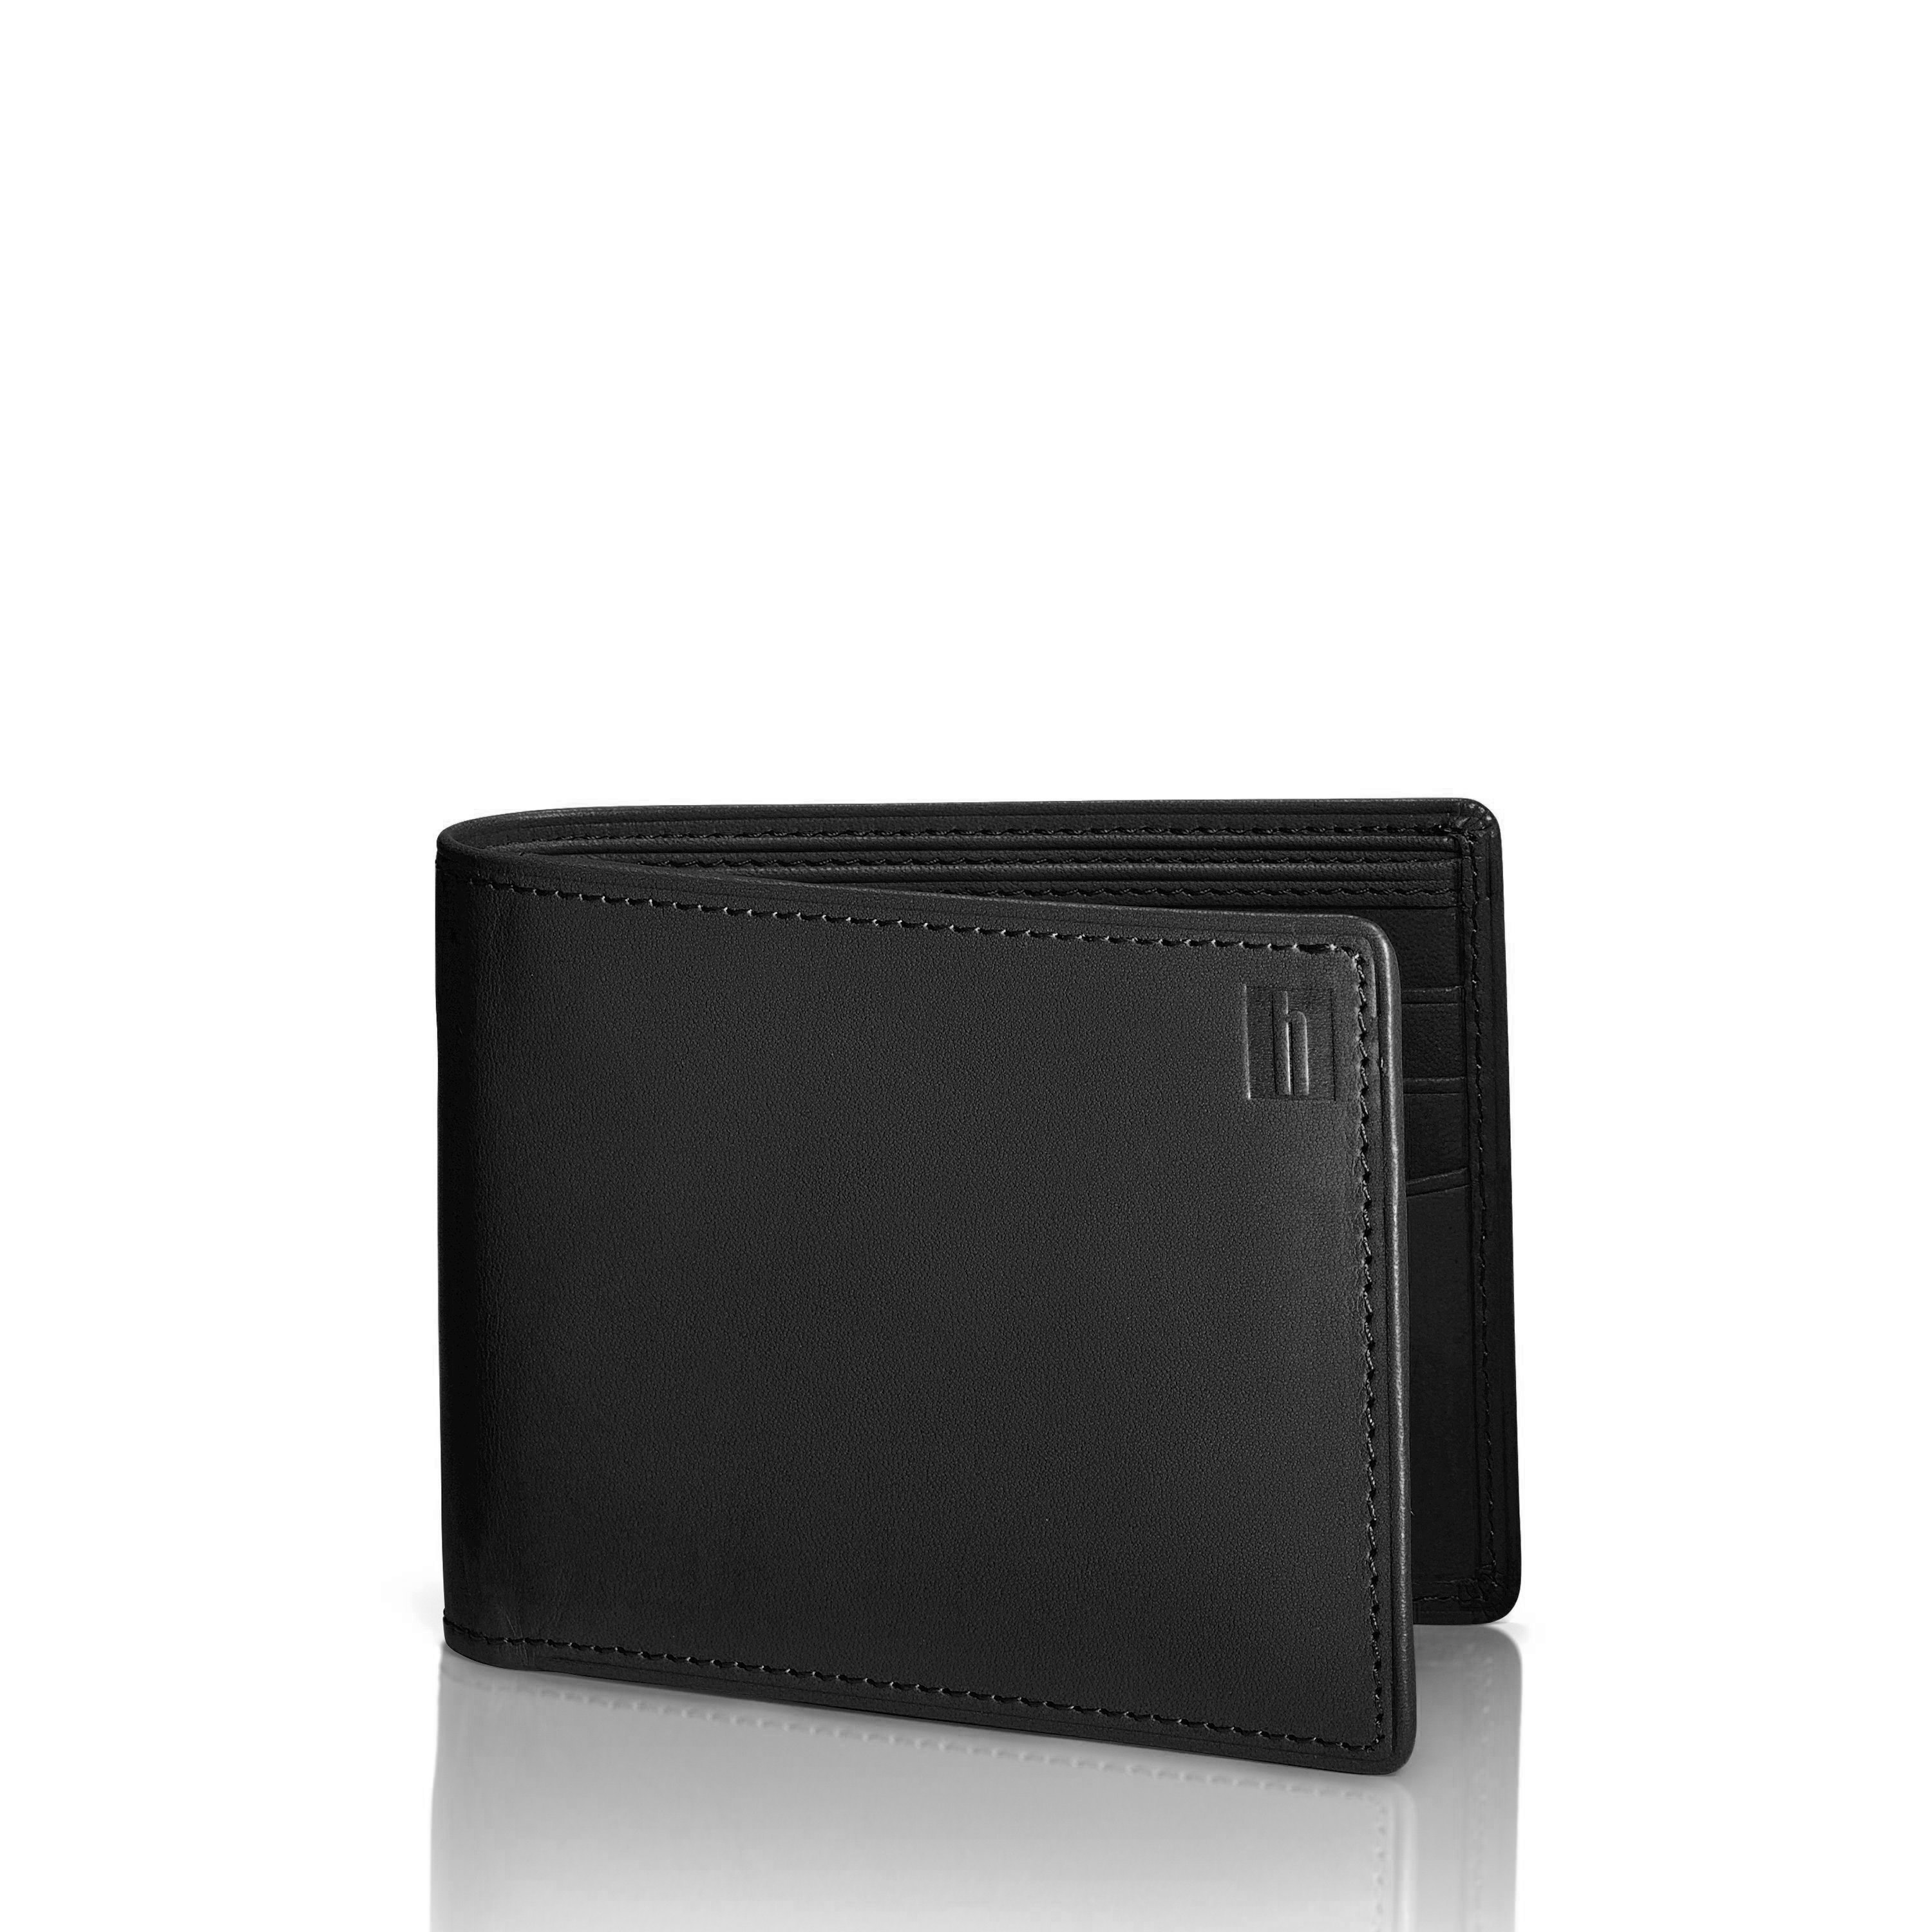 Hartmann Belting Wallet with Removable Card Wallet